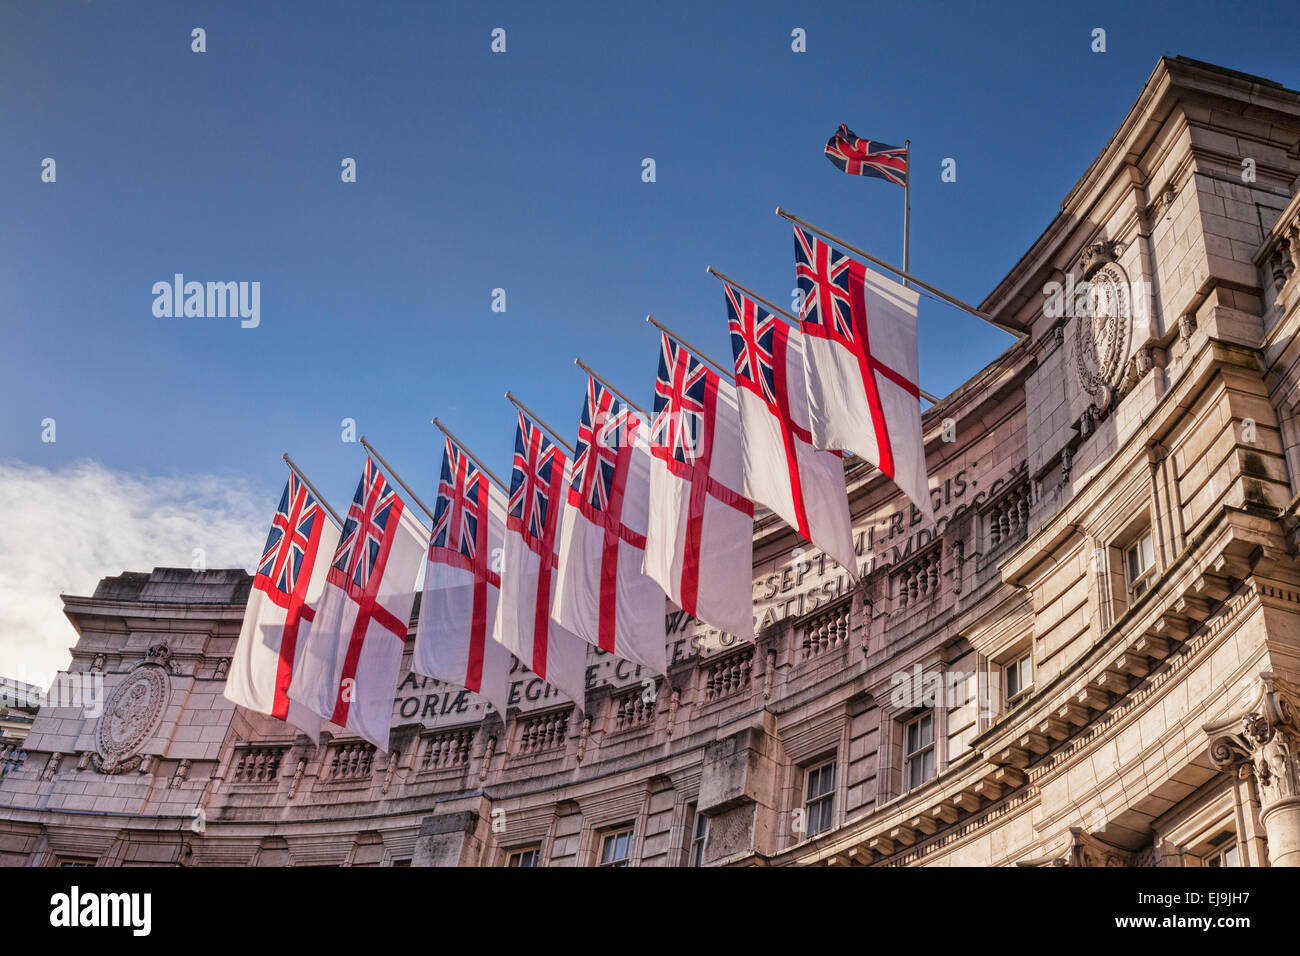 L'Admiralty Arch Blanc volant enseignes, le pavillon de la Marine royale. Photo Stock